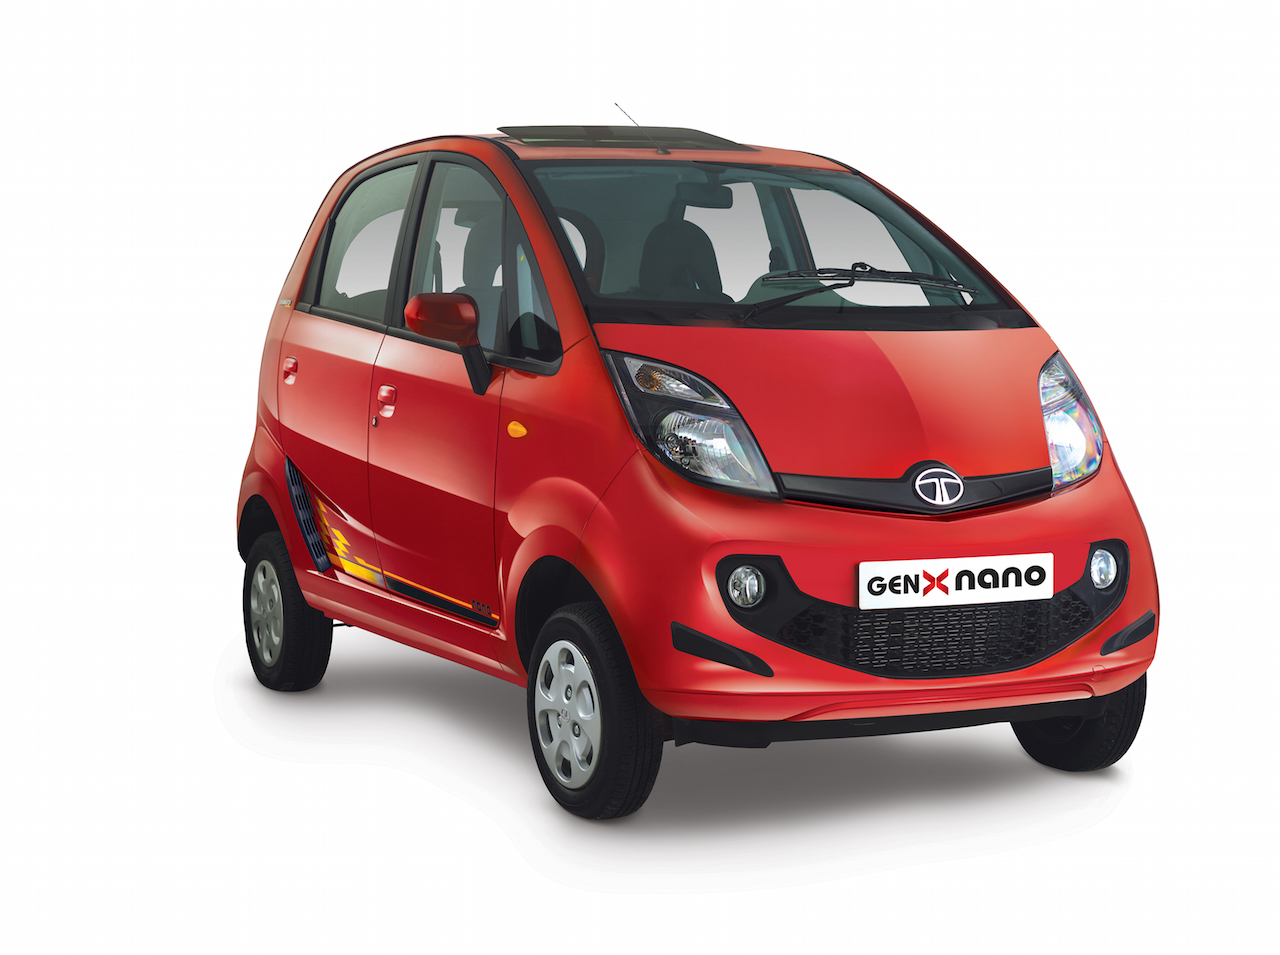 Tata Genx Nano: Tata Motors Launches Celebration Edition Range